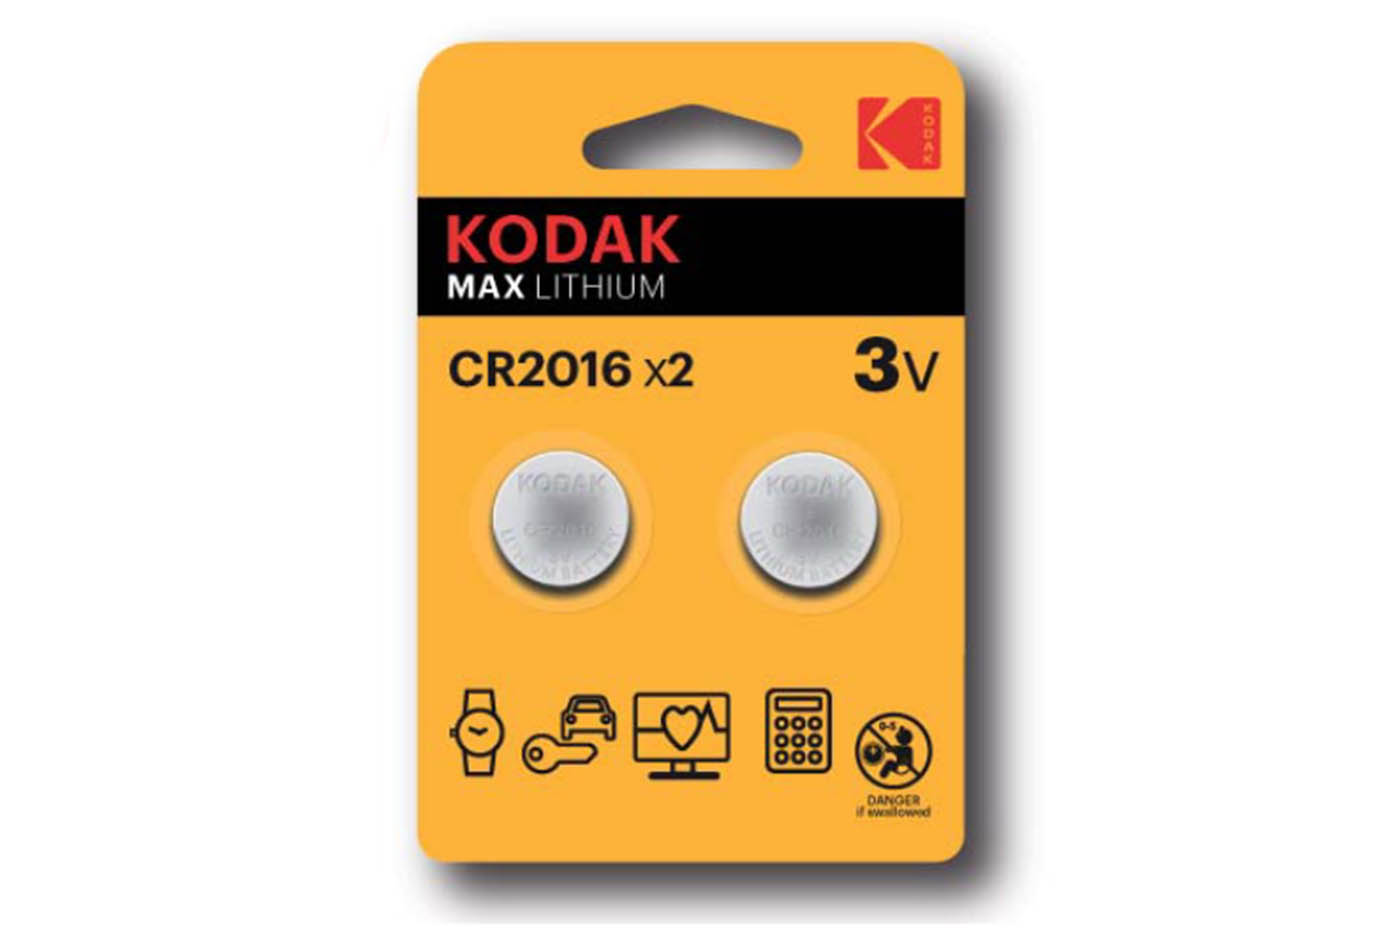 Kodak batteria CR2020 3V max lithium 2pz bottone litio DL2025